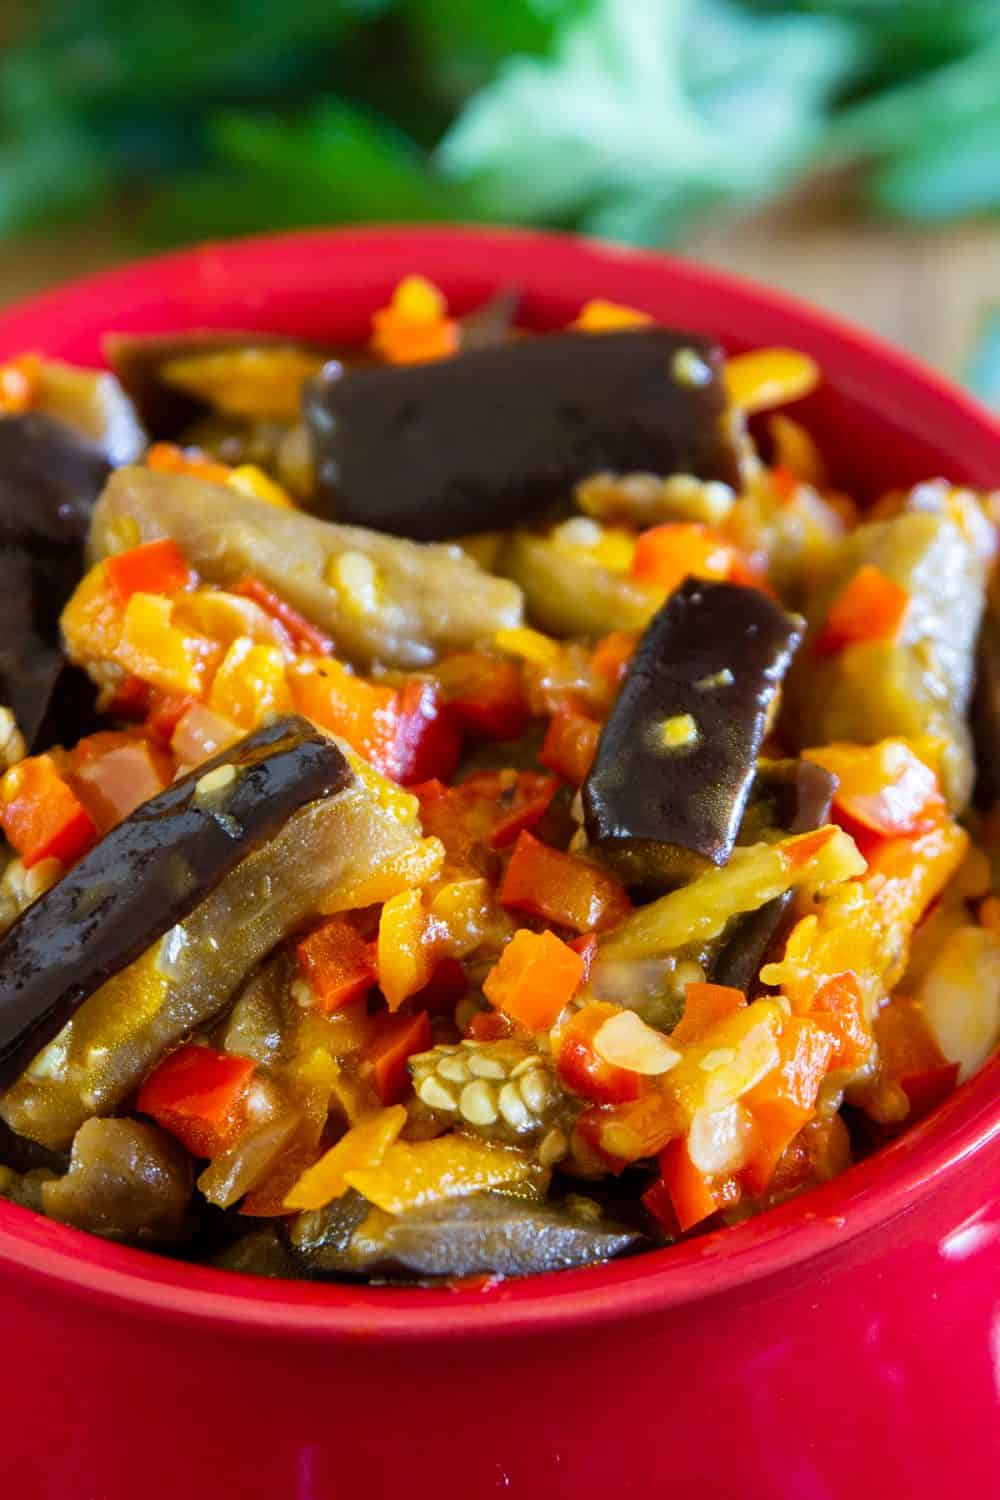 A closeup of roasted eggplant salad with peppers and carrots in a red bowl